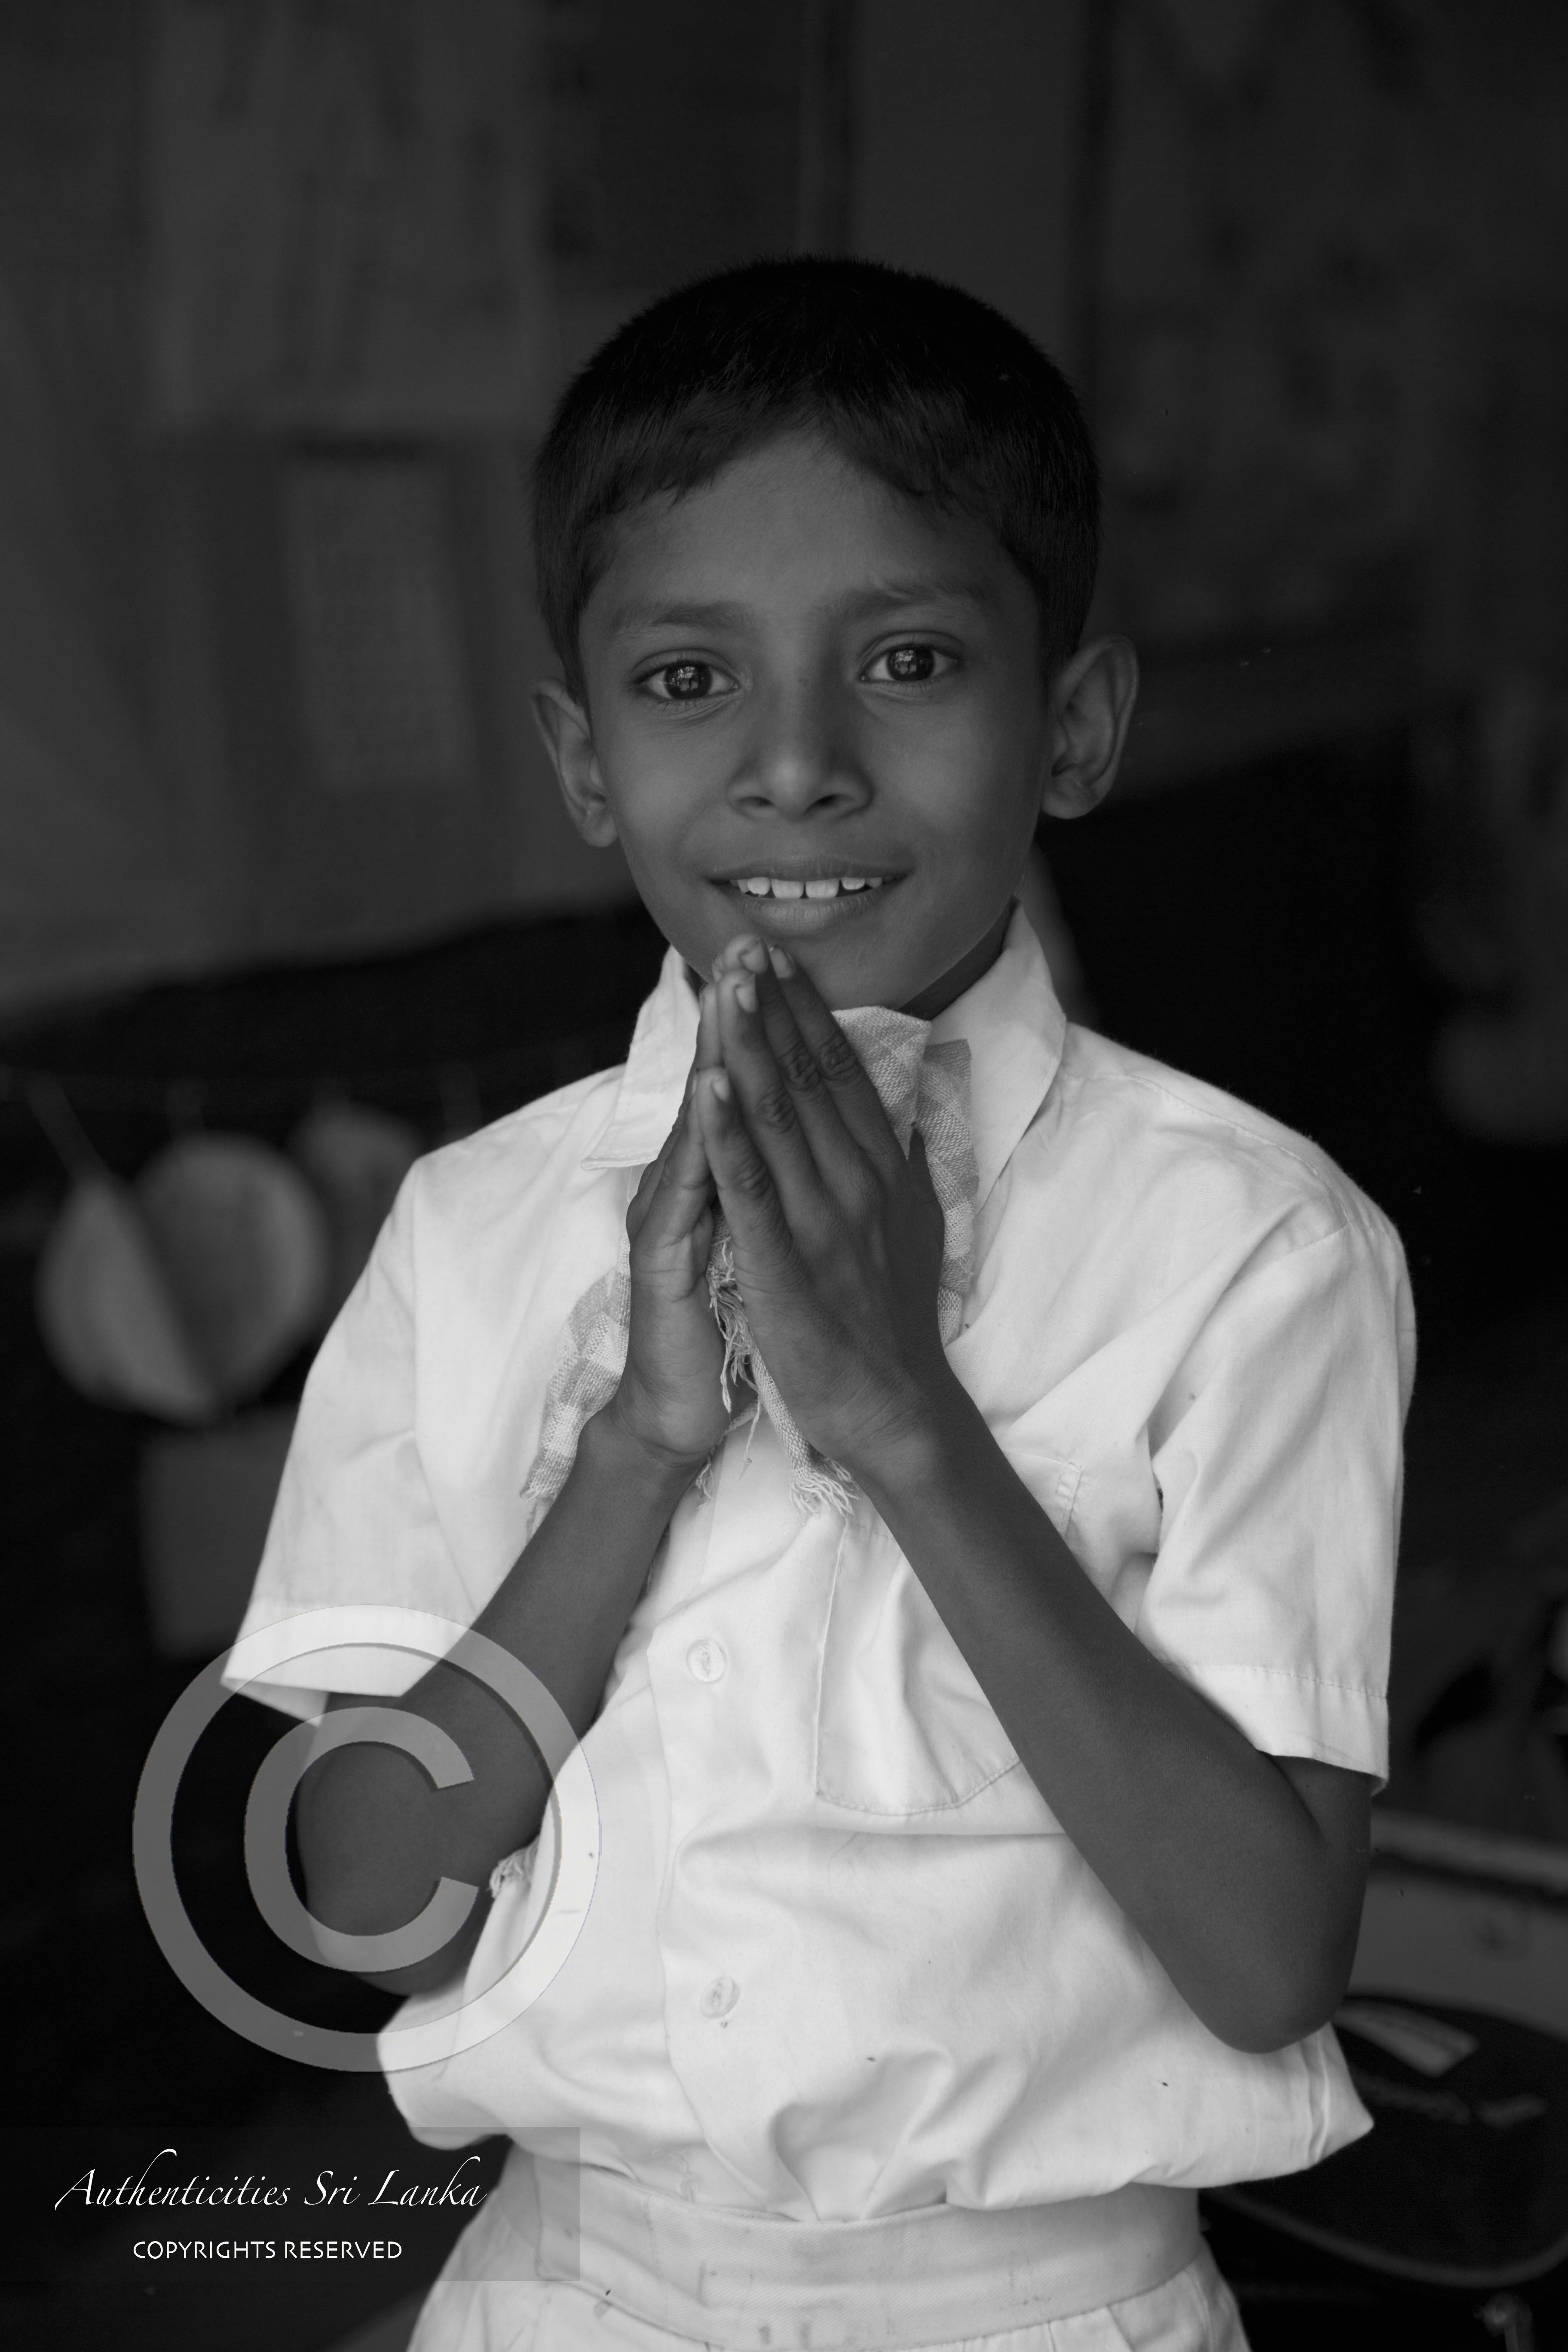 A Schoolboy From A Remote Local School Greeting In A Traditional